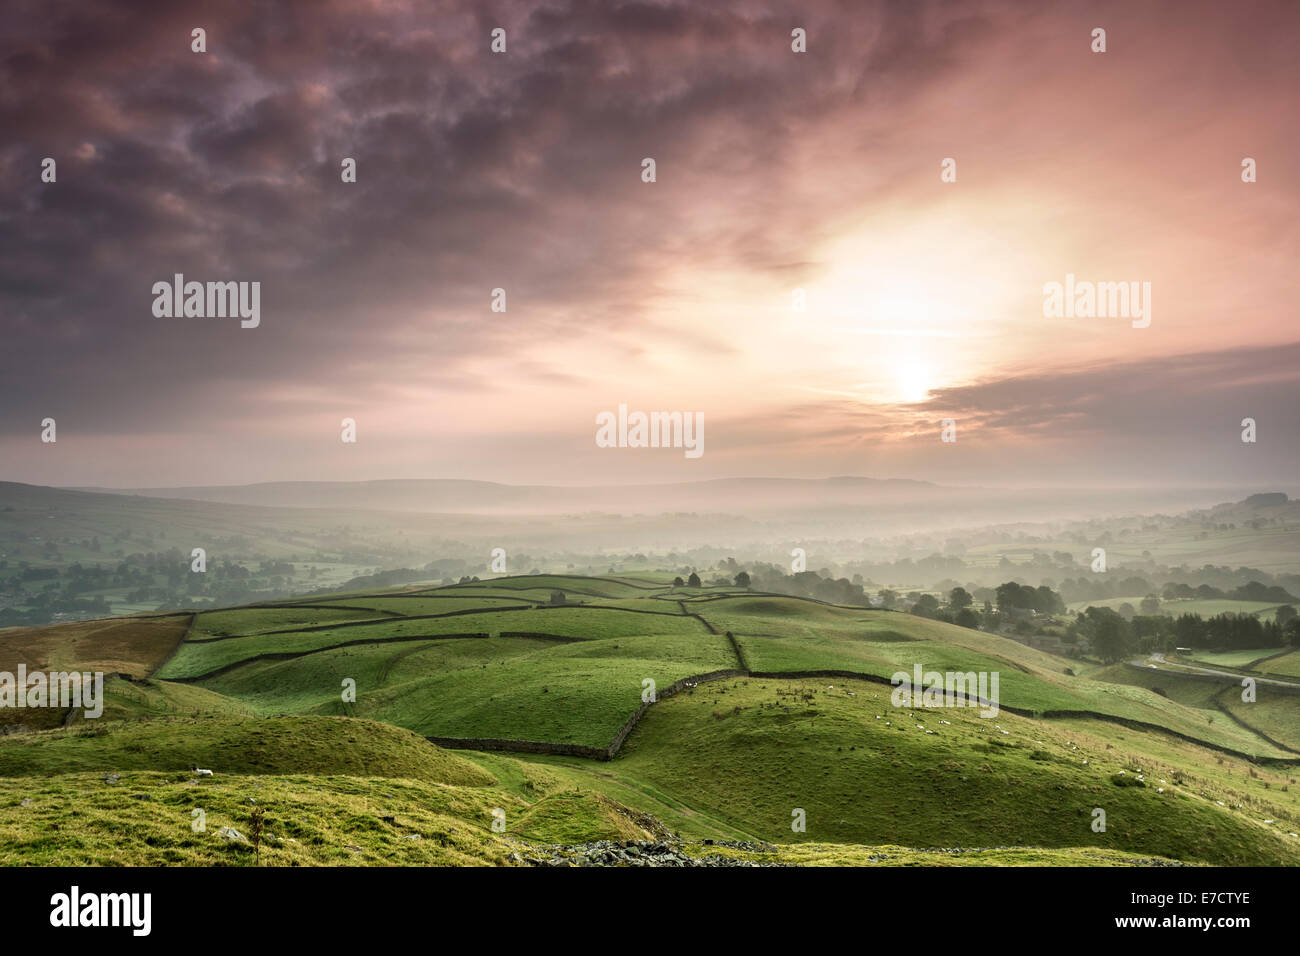 The View Across a Misty Teesdale at Sunrise From the Ancient Tumulus of Kirkcarrion, Lunedale, Teesdale, County, - Stock Image